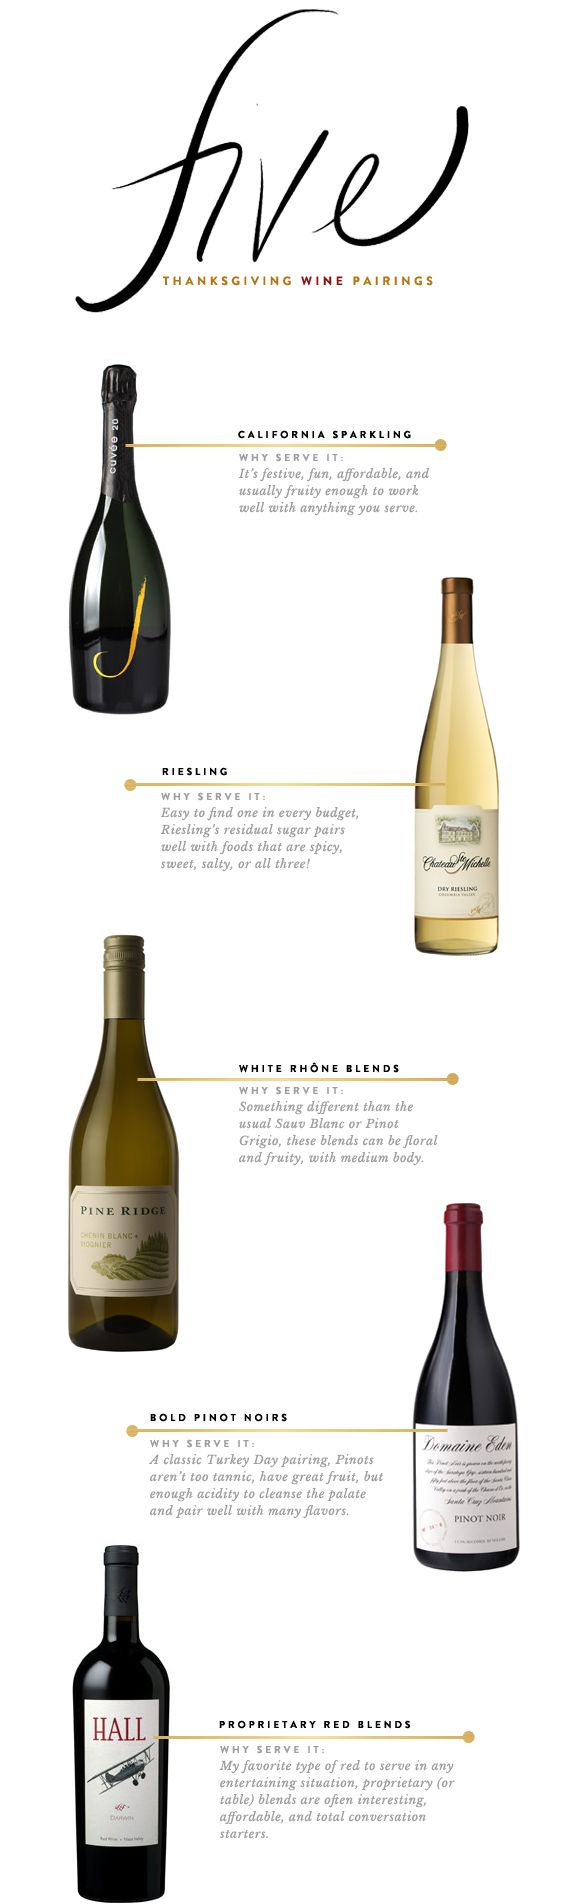 5 Holiday Wines - These varietals/blends are great suggestions for Thanksgiving & Christmas entertaining.